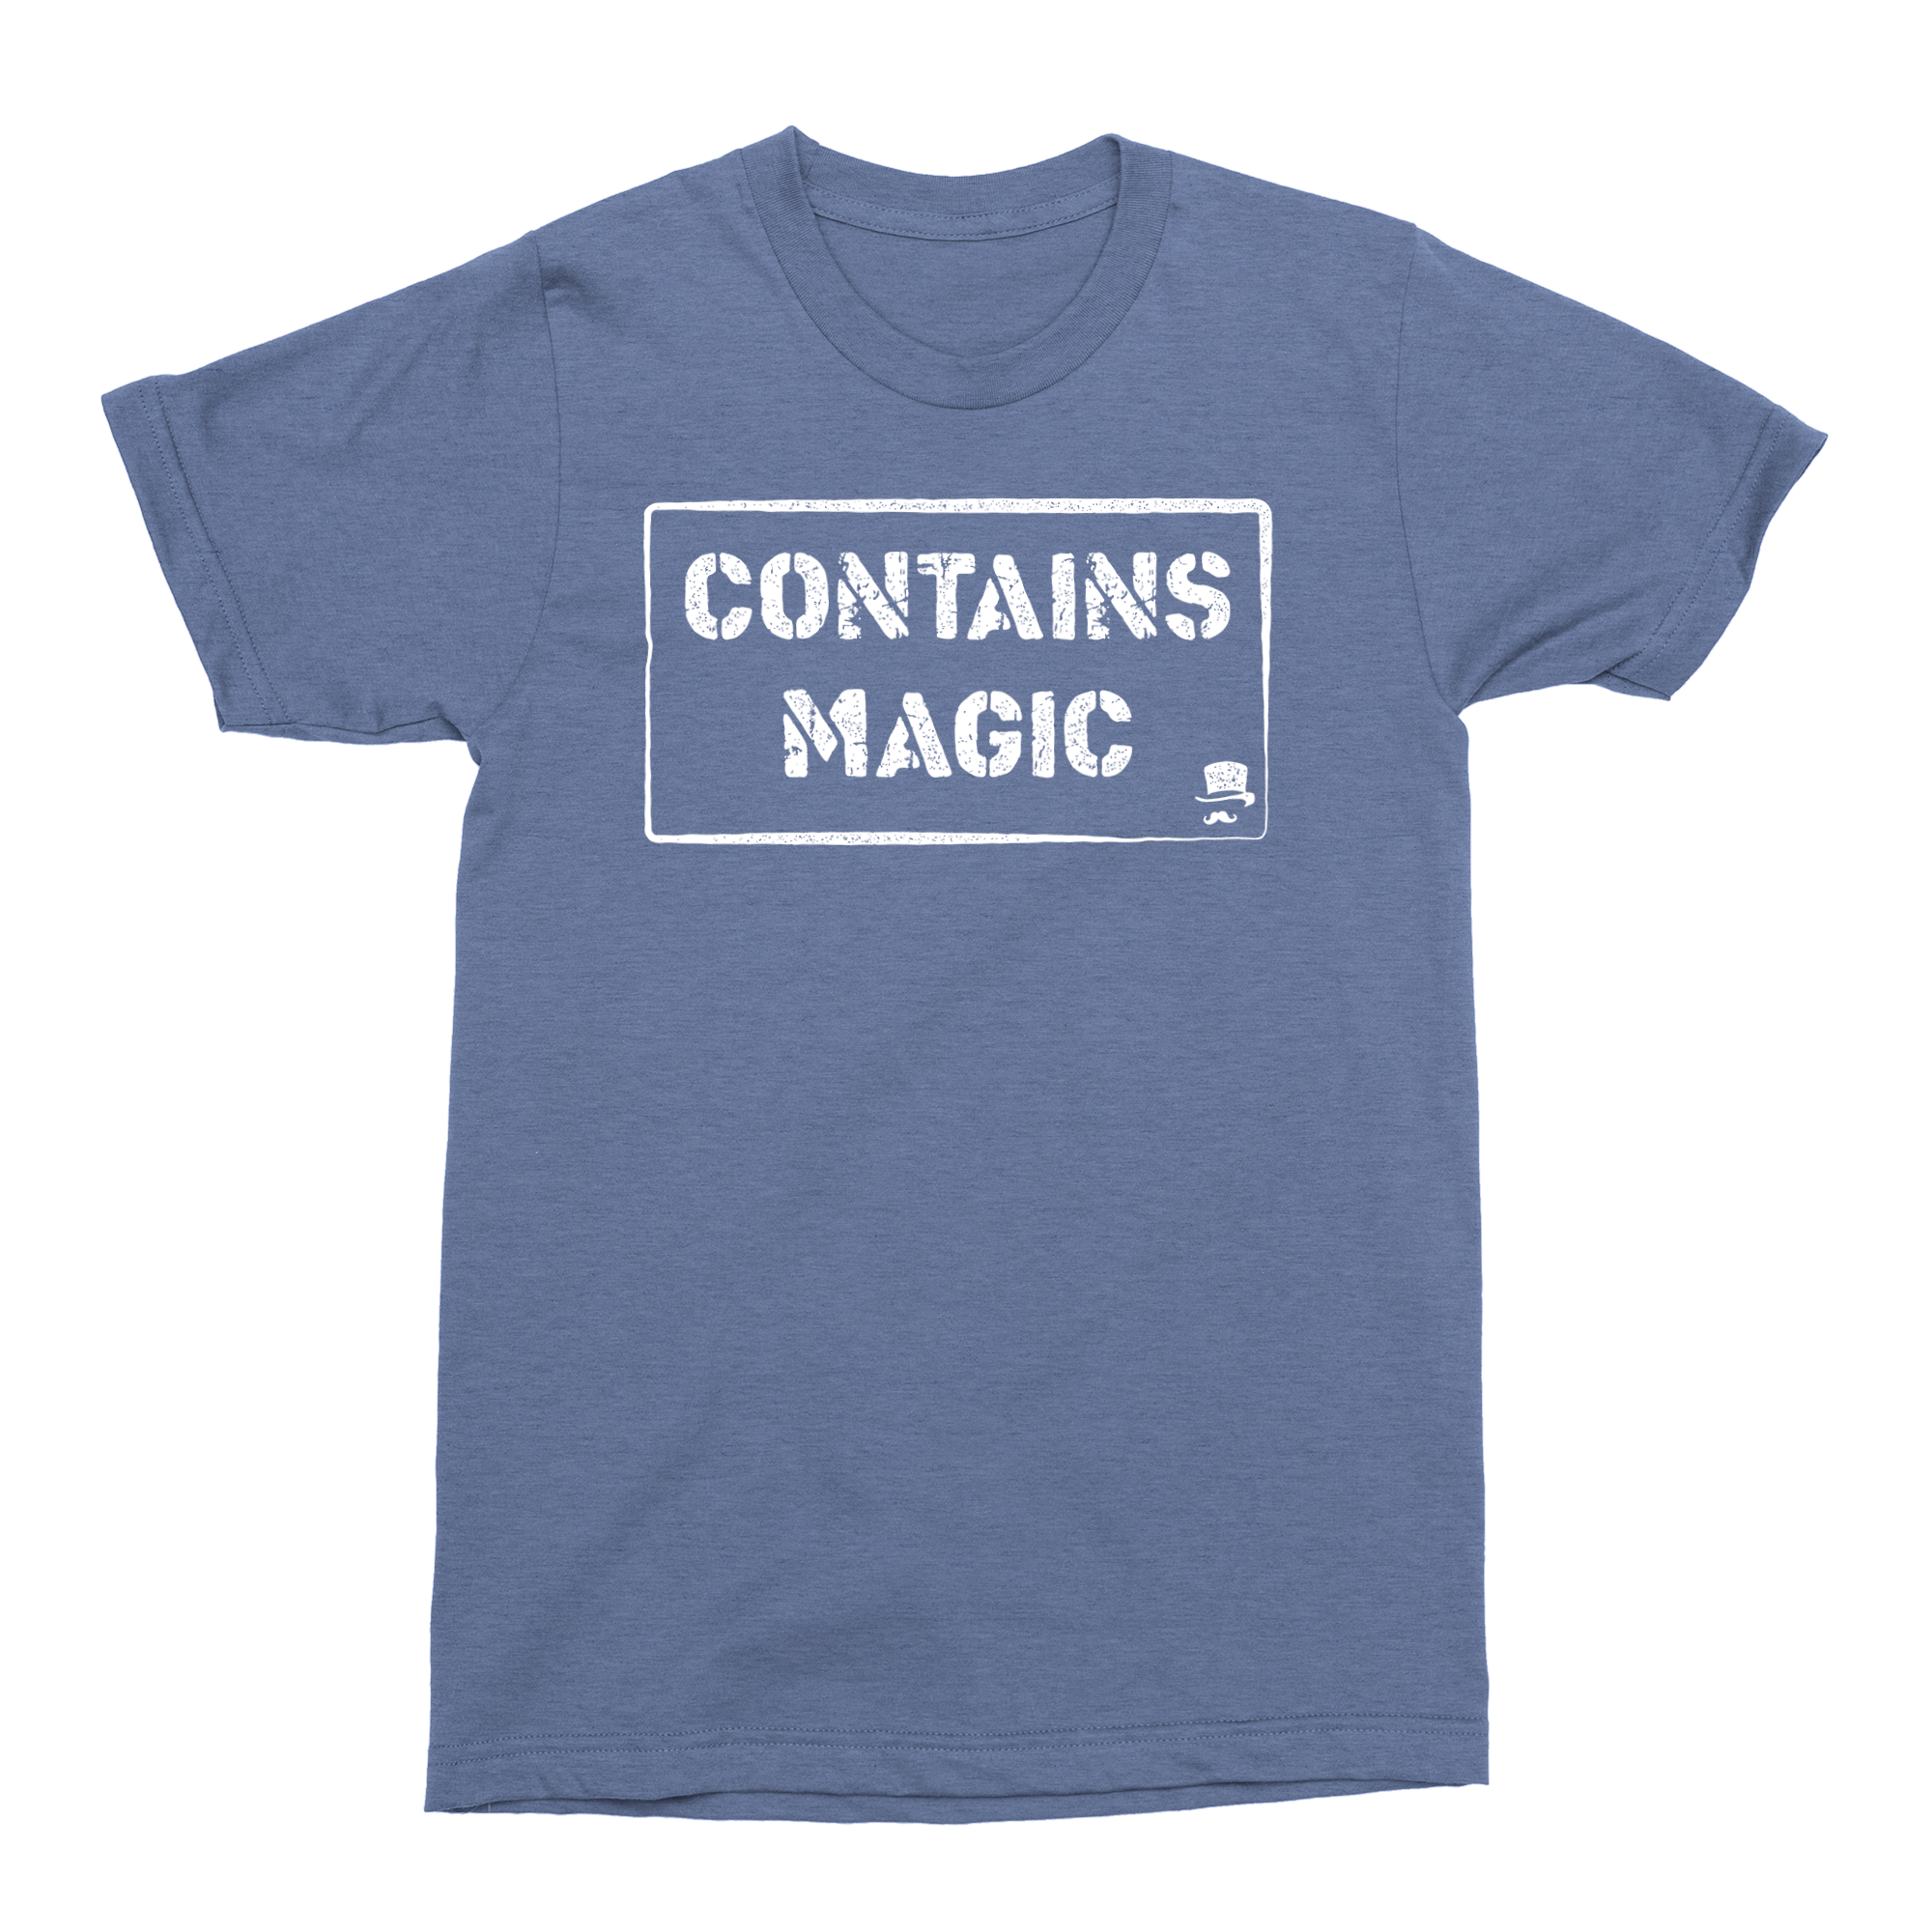 ContainsMagic_HBlue